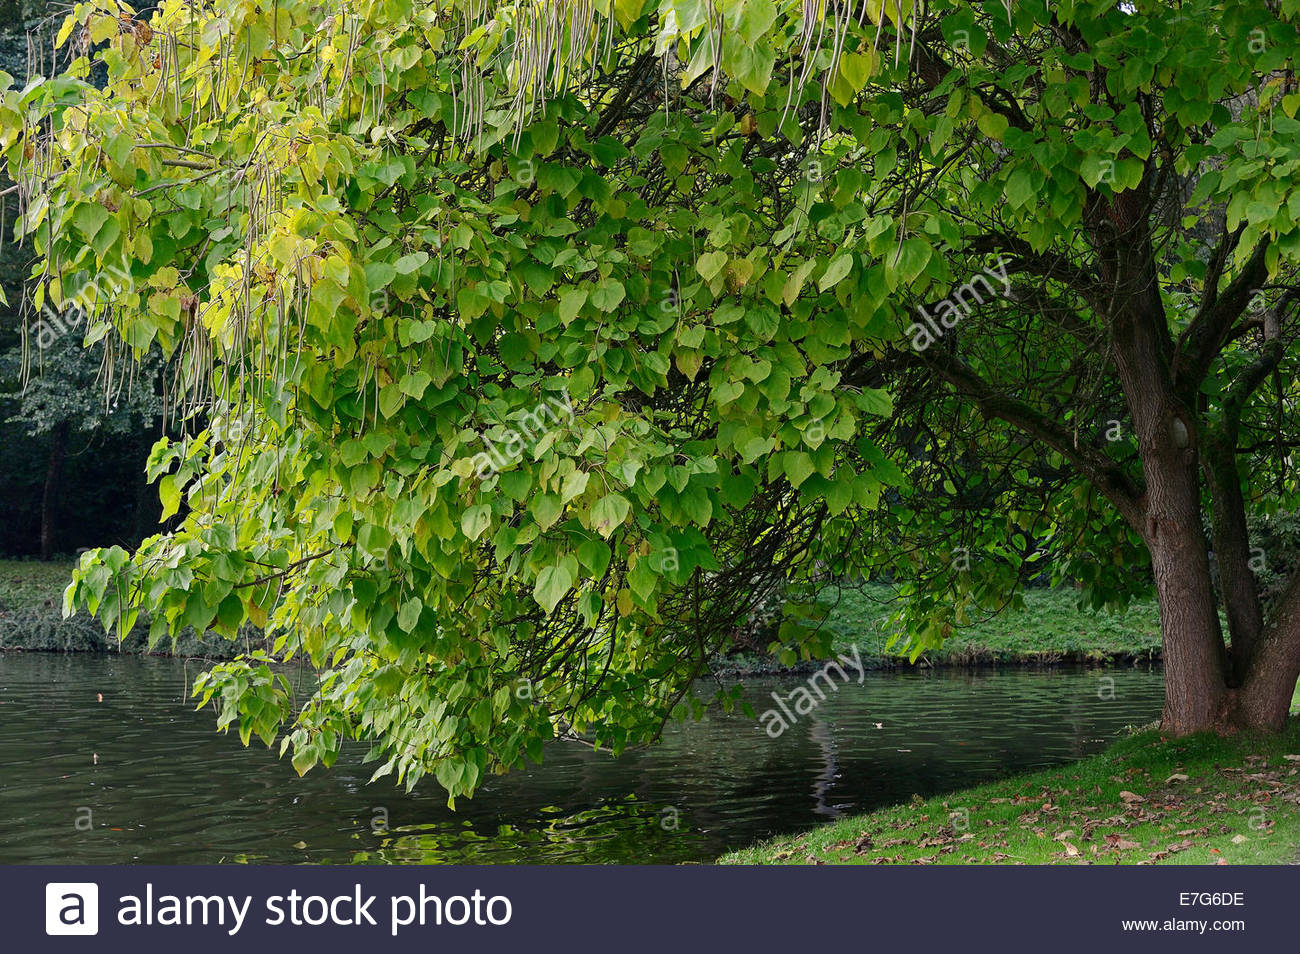 Indian Tree Leaves Stock Photos & Indian Tree Leaves Stock Images.